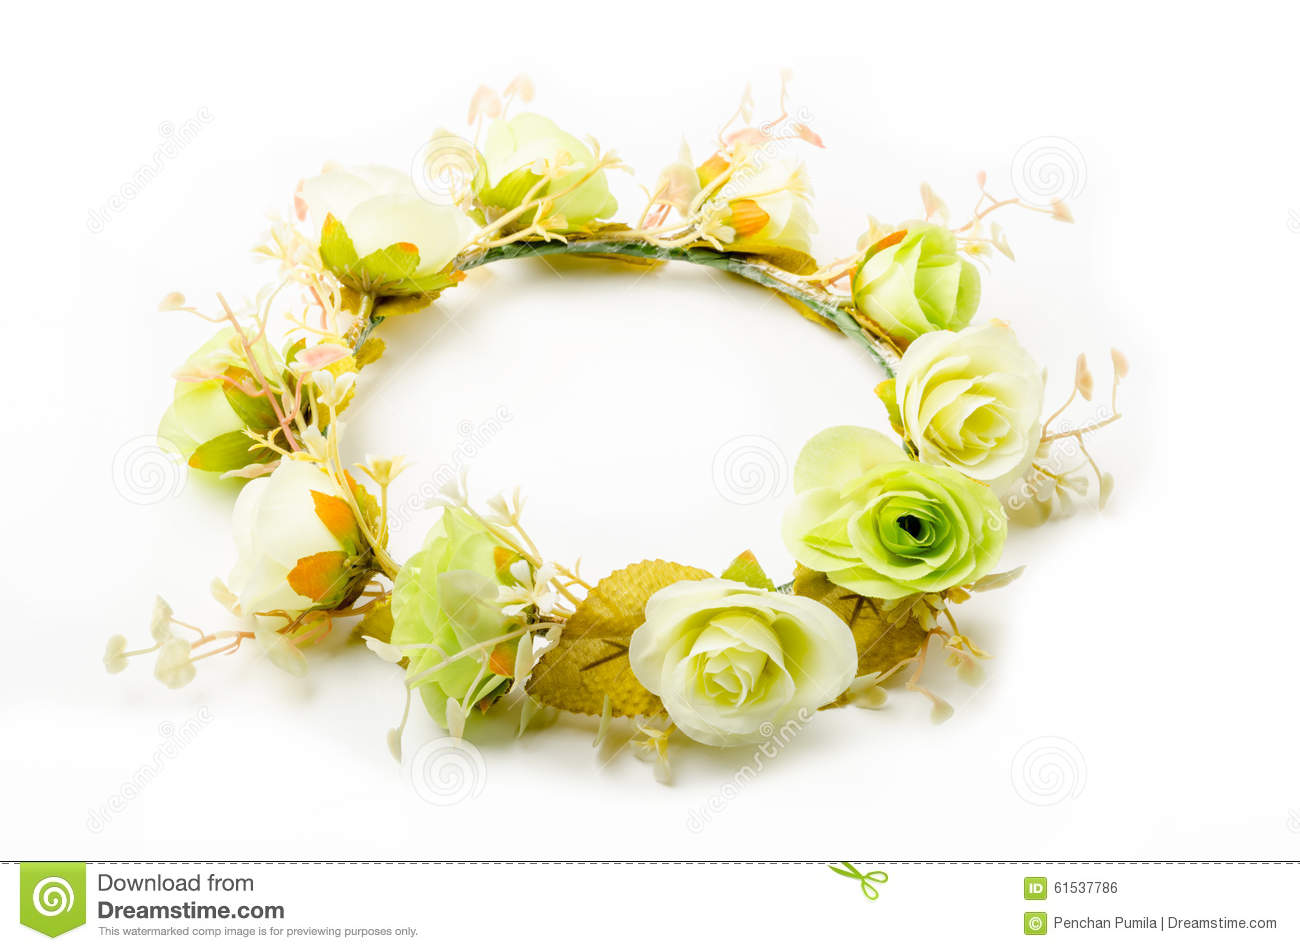 Forest coronal or colorful fake flower crown stock photo image of download forest coronal or colorful fake flower crown stock photo image of freshness izmirmasajfo